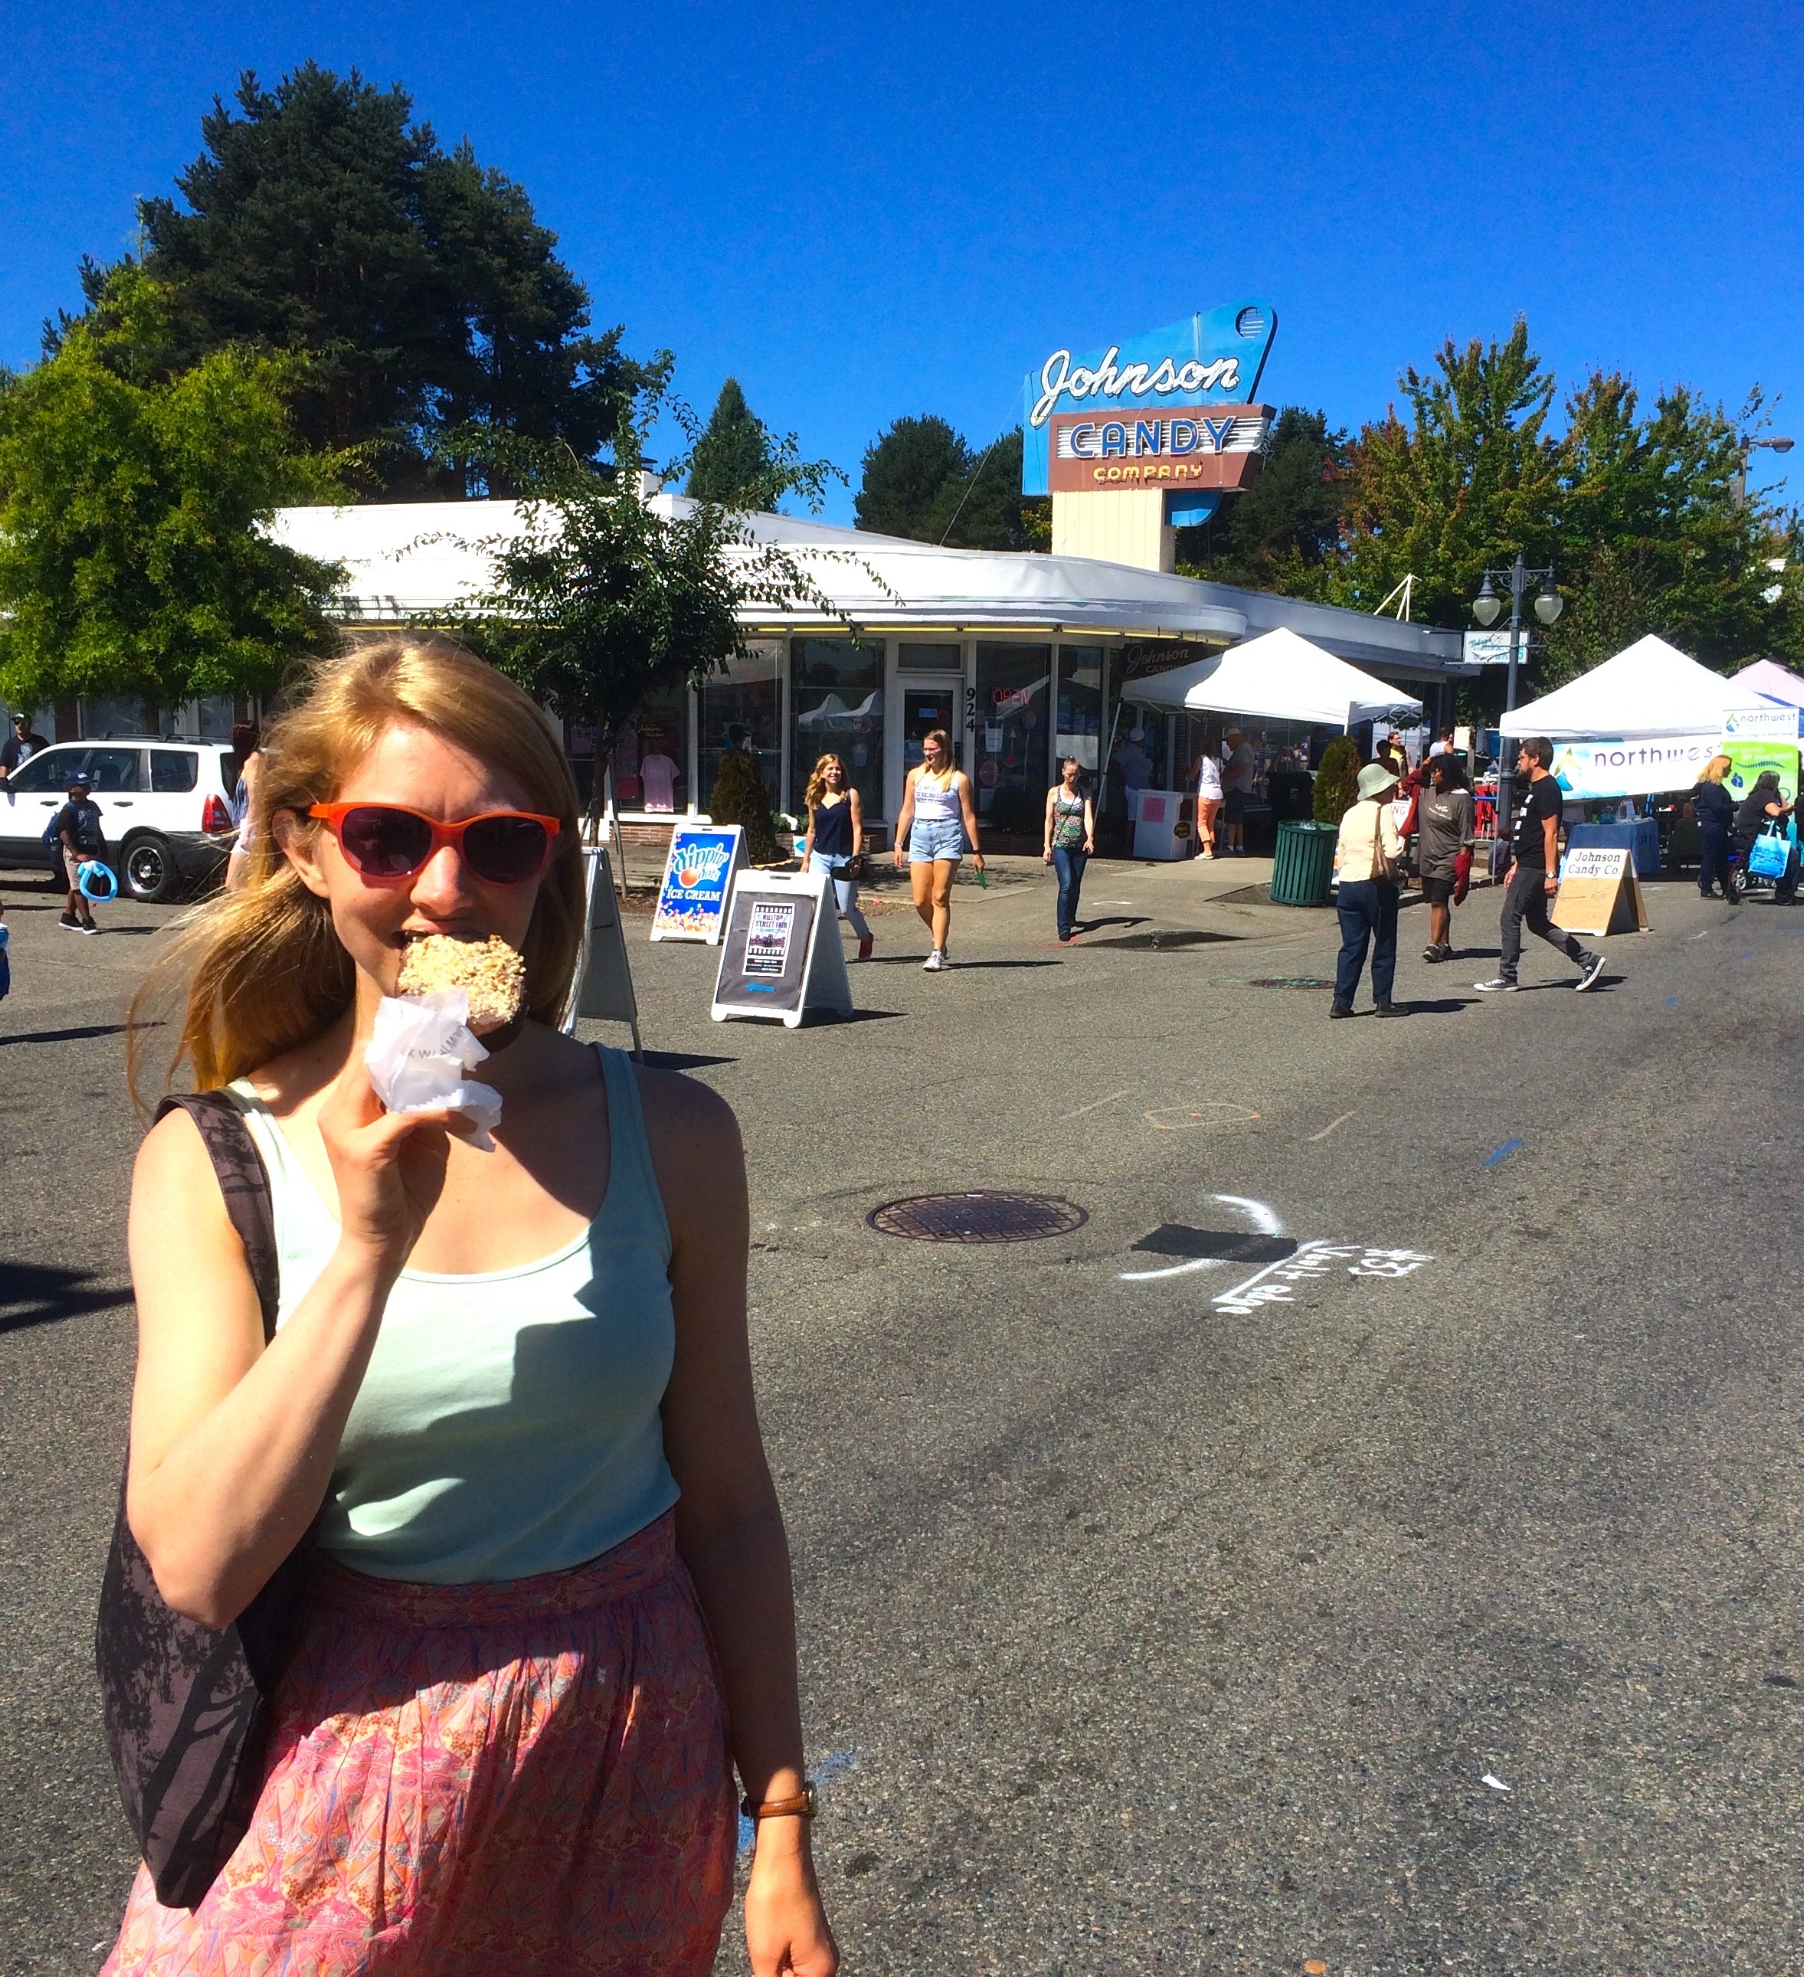 Dark Chocolate with Almonds at the Hilltop Street Fair - so good!